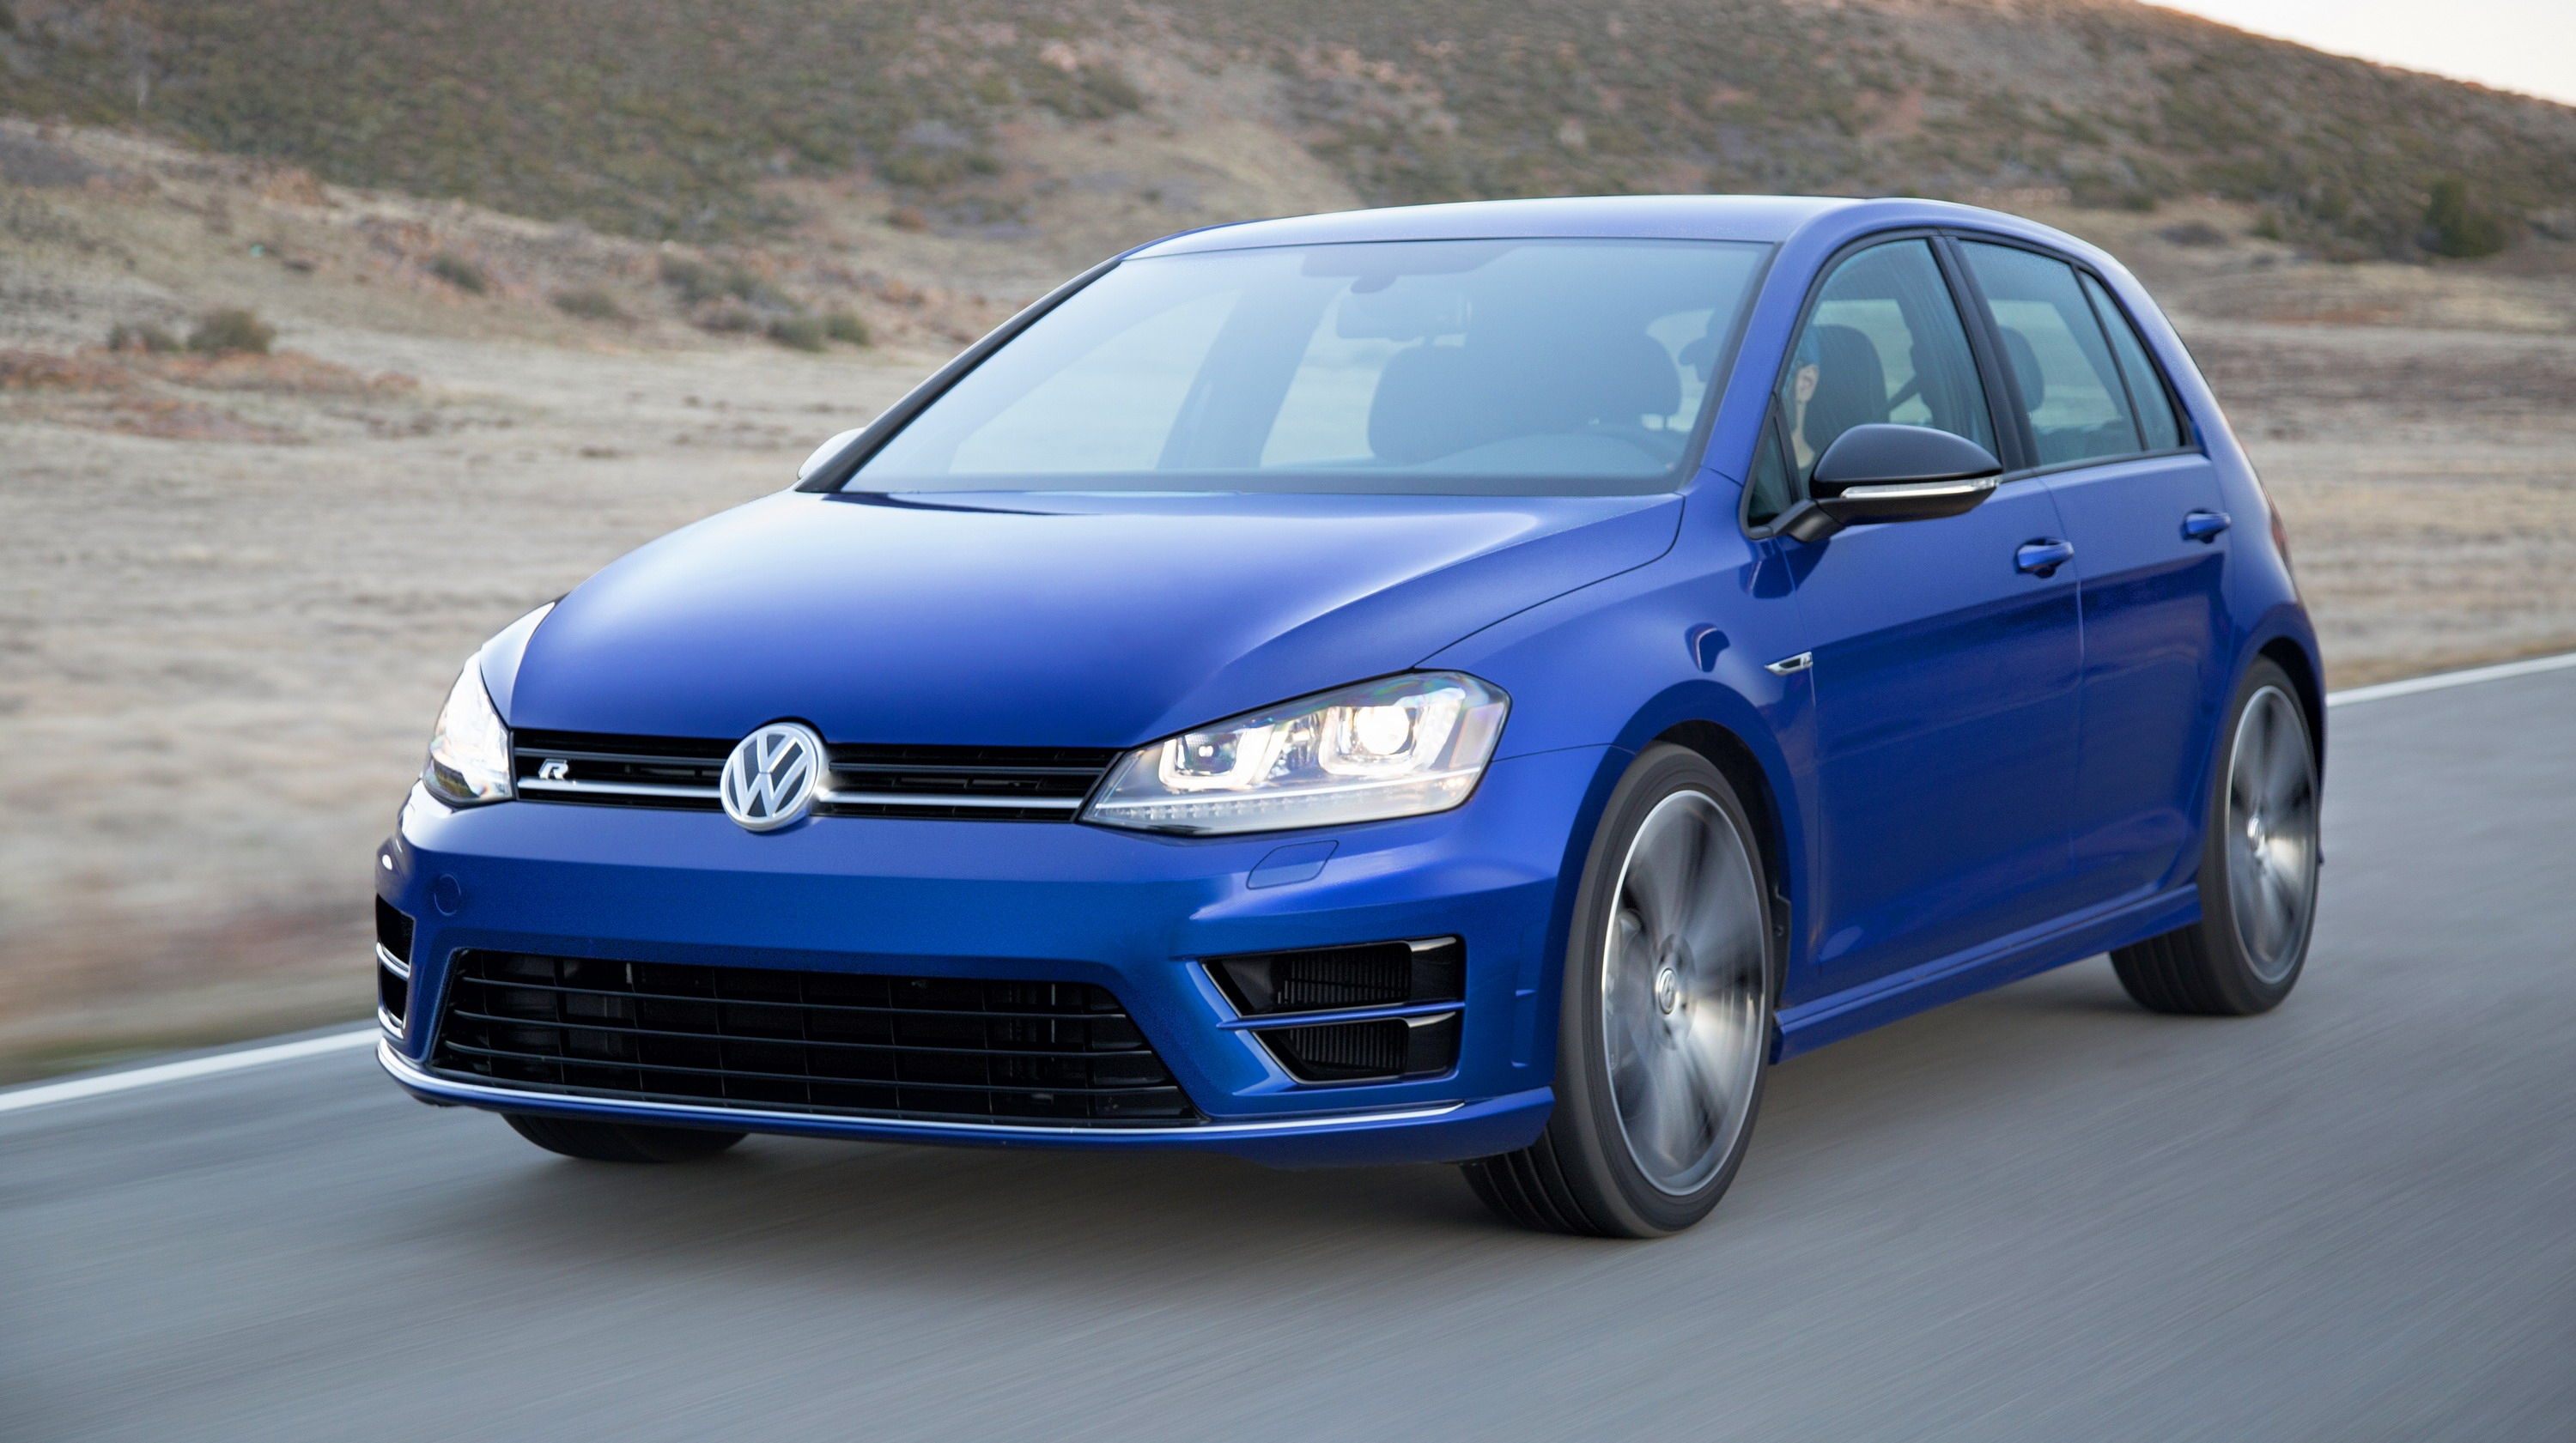 riding shotgun in a vw golf r driven by scott speed video news top speed. Black Bedroom Furniture Sets. Home Design Ideas